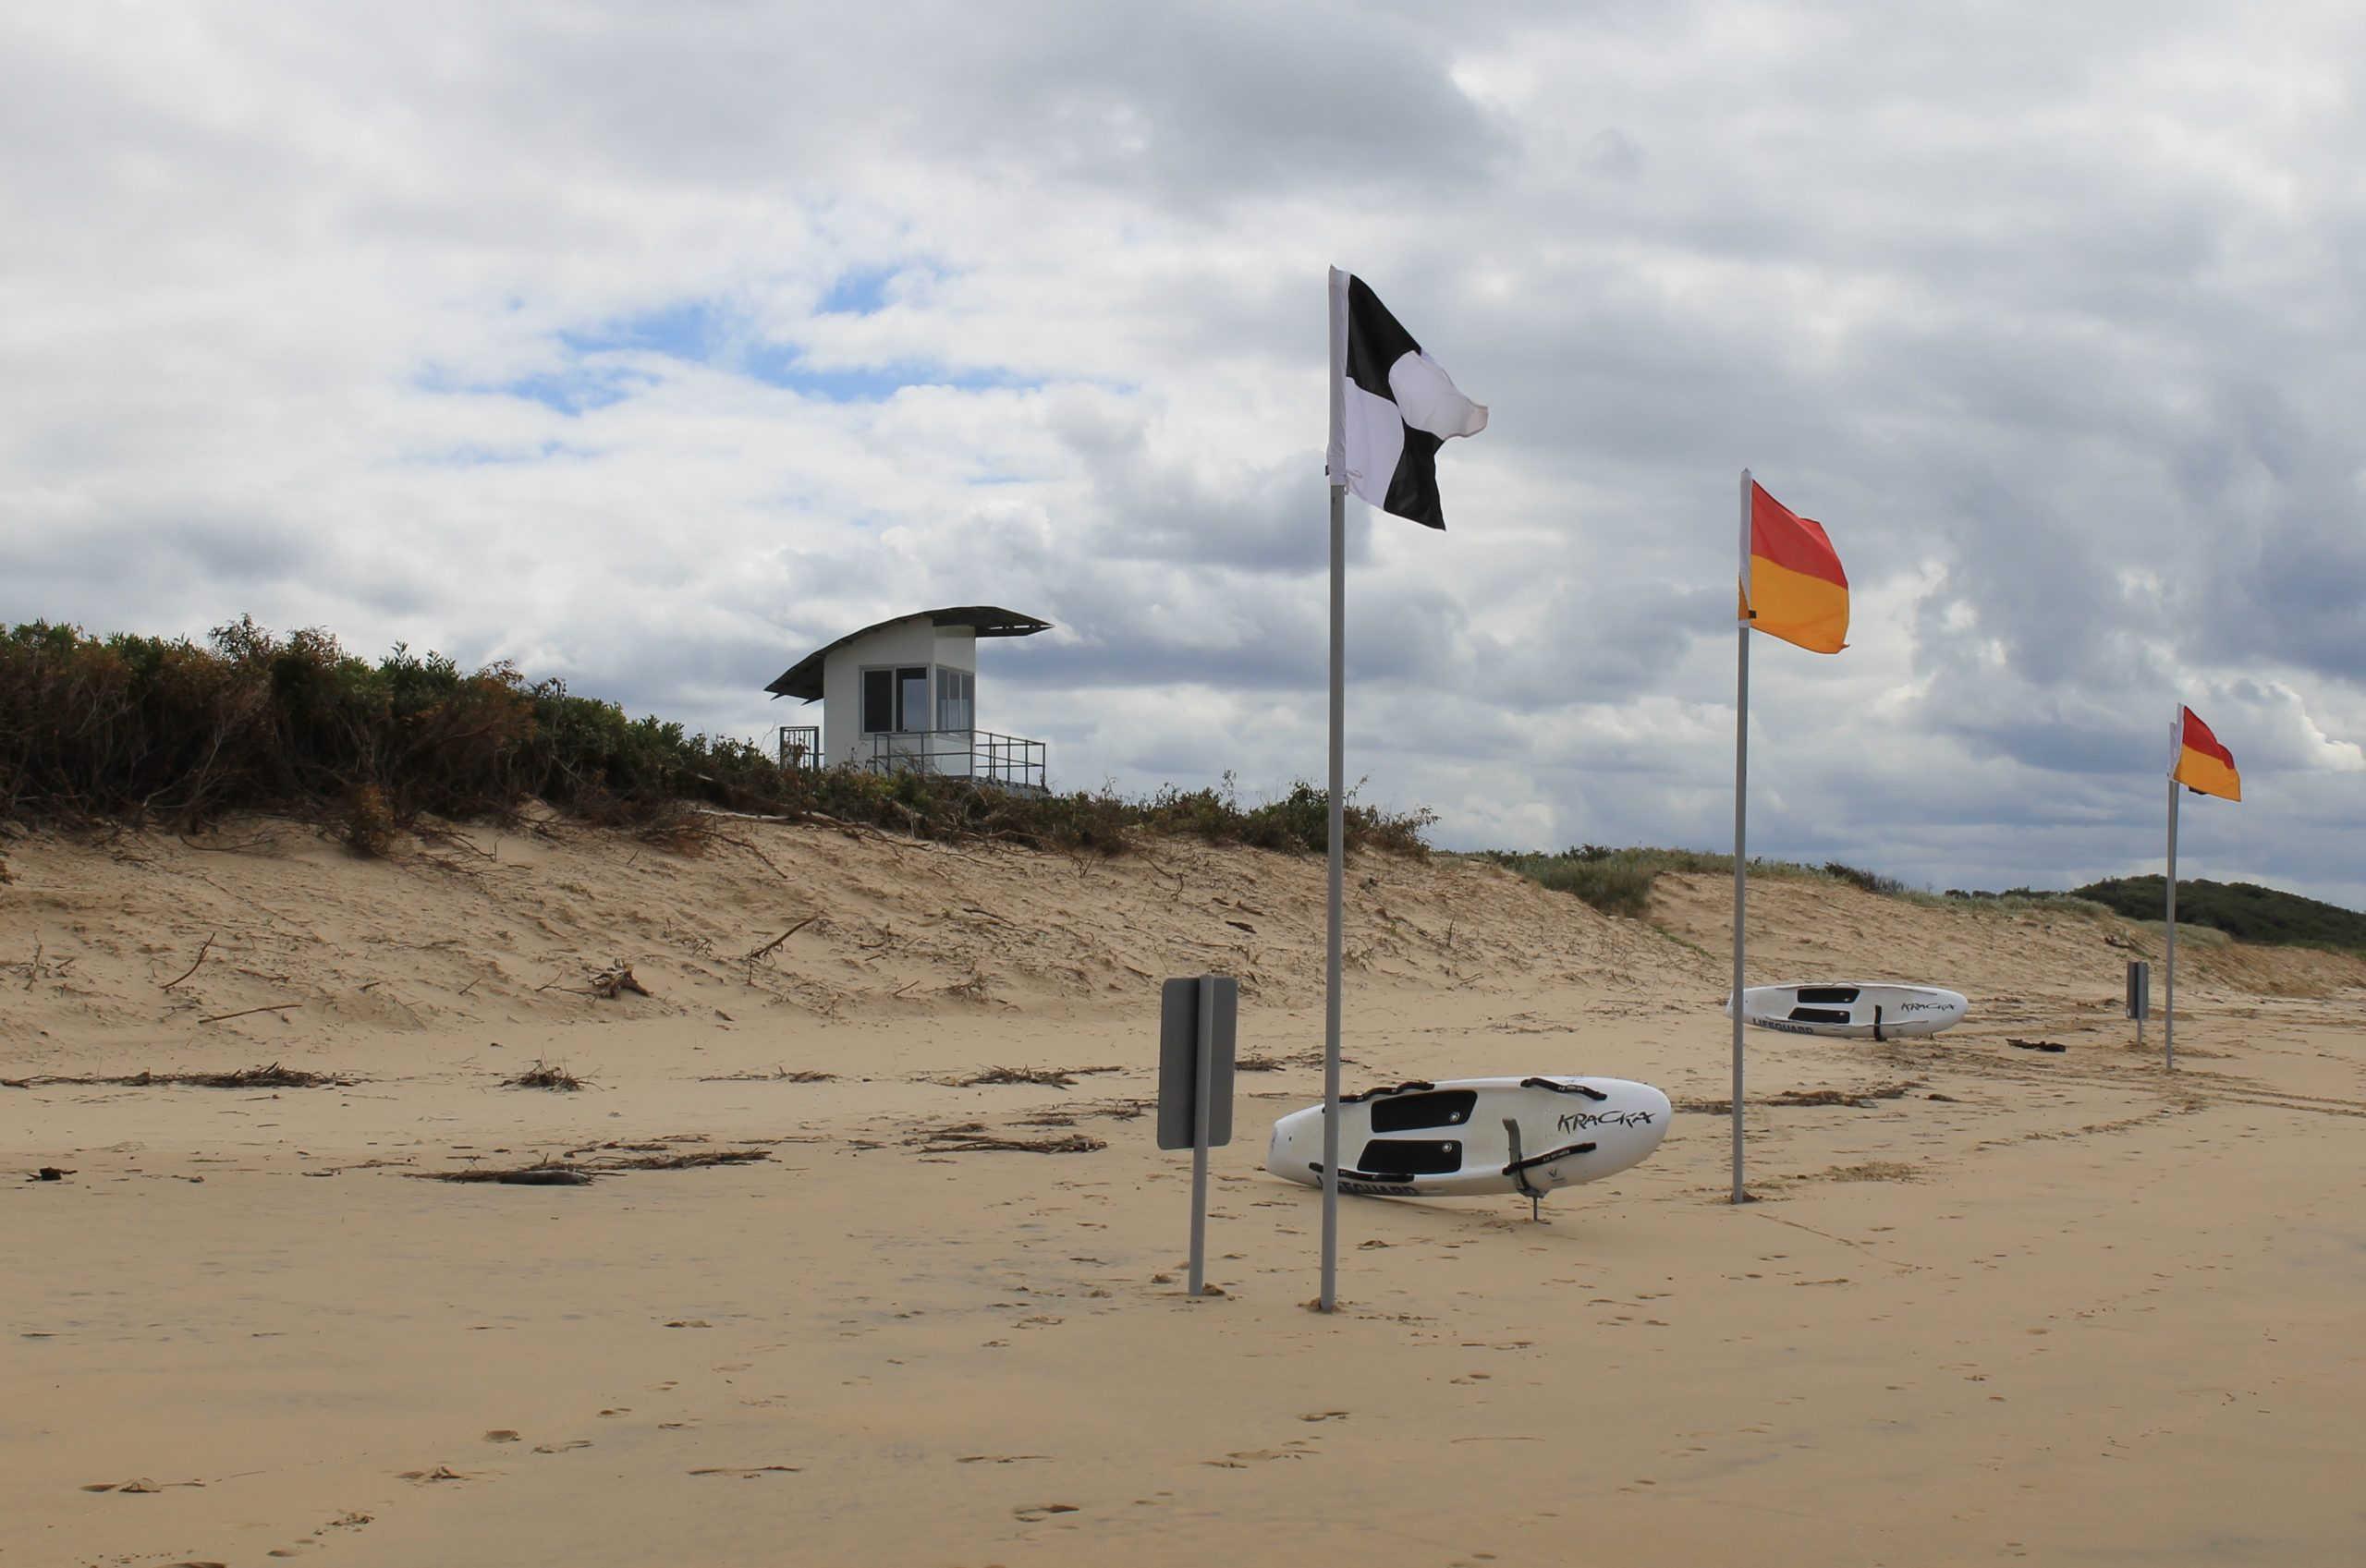 De-registered surf life saving clubs call for more talks